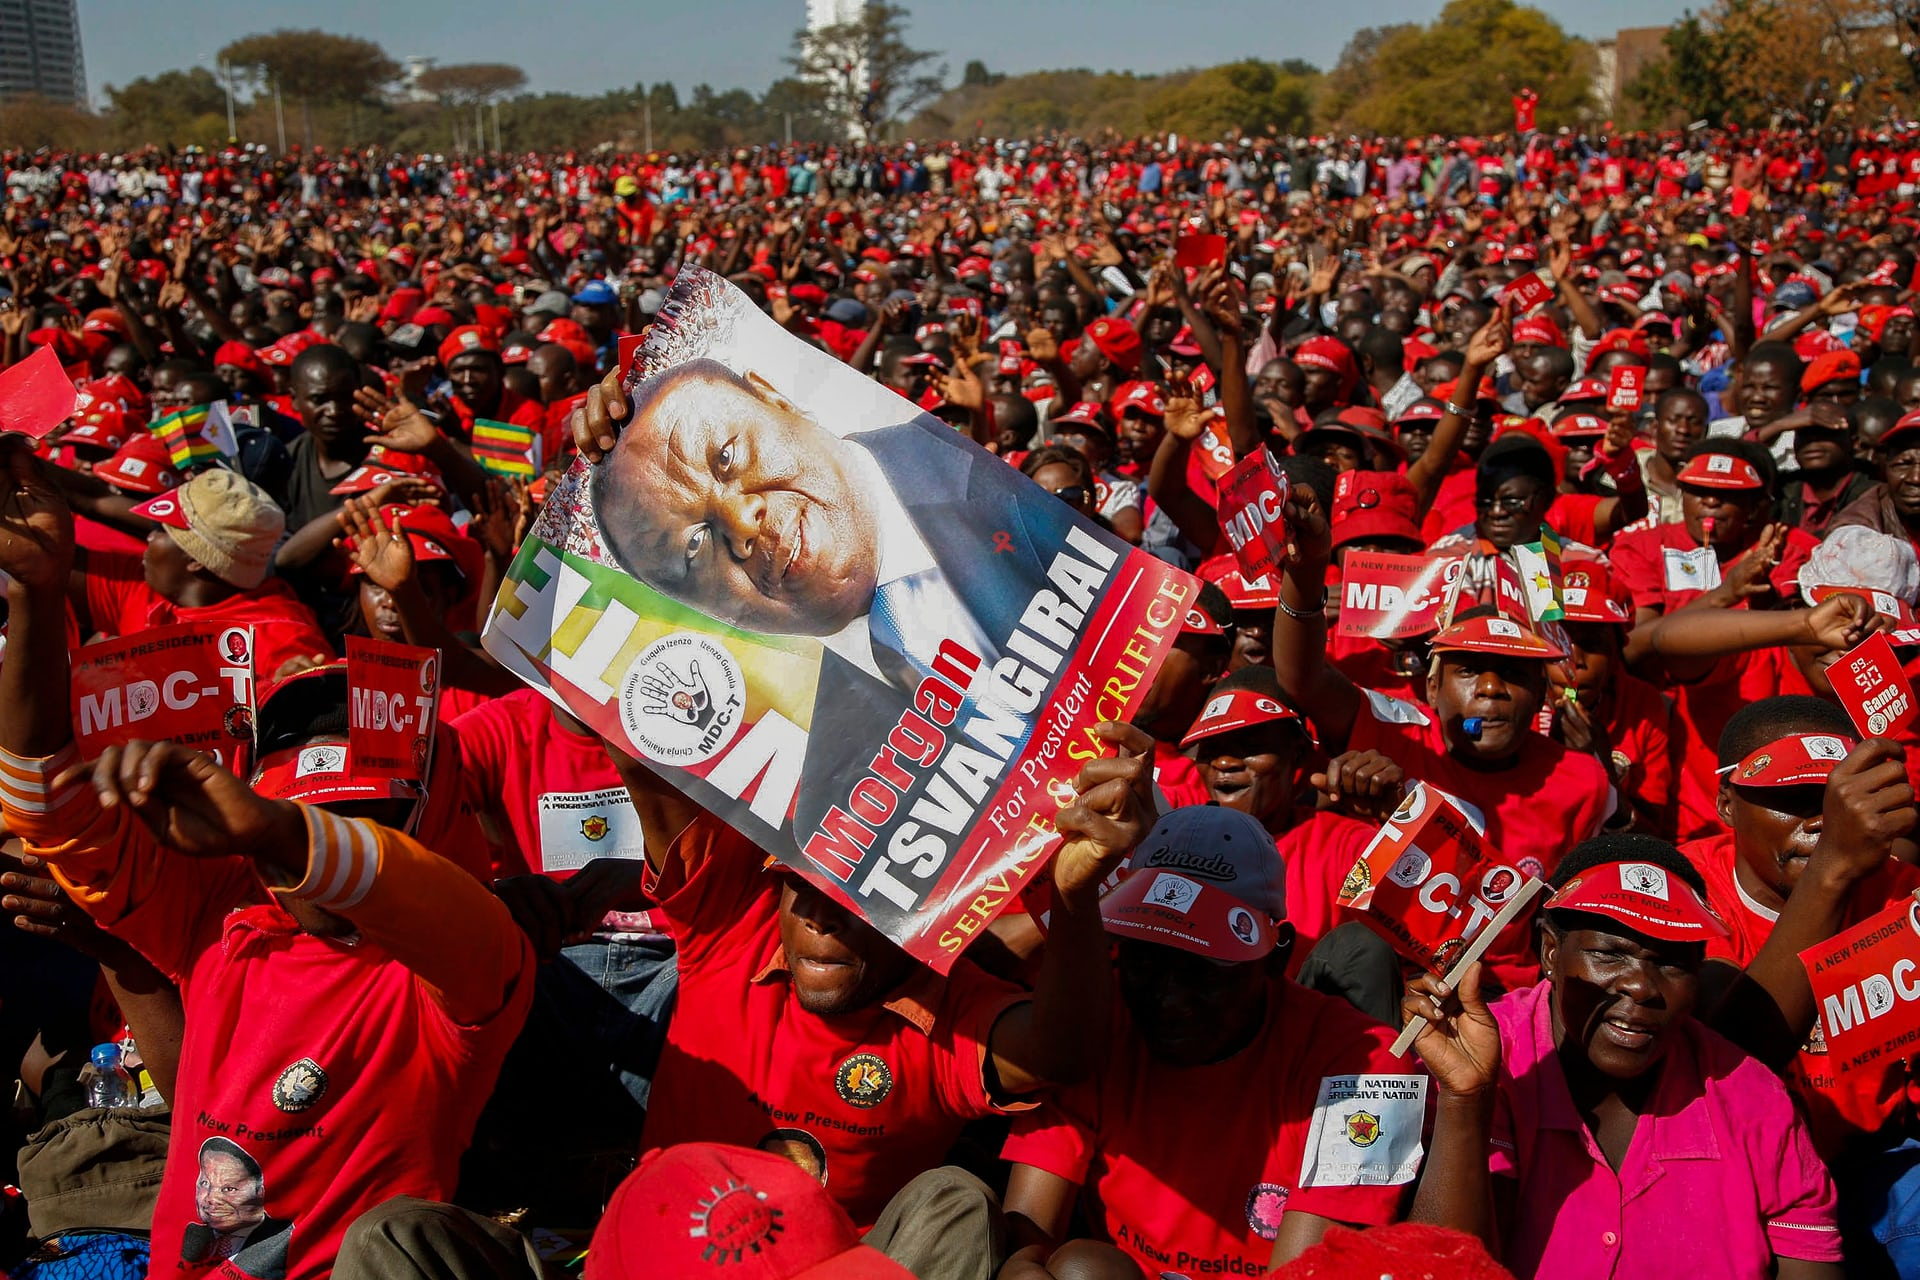 MDC supporters at an election rally in July 2013 in Harare ahead of presidential elections at the end of the month. Photograph: Aaron Ufumeli/EPA